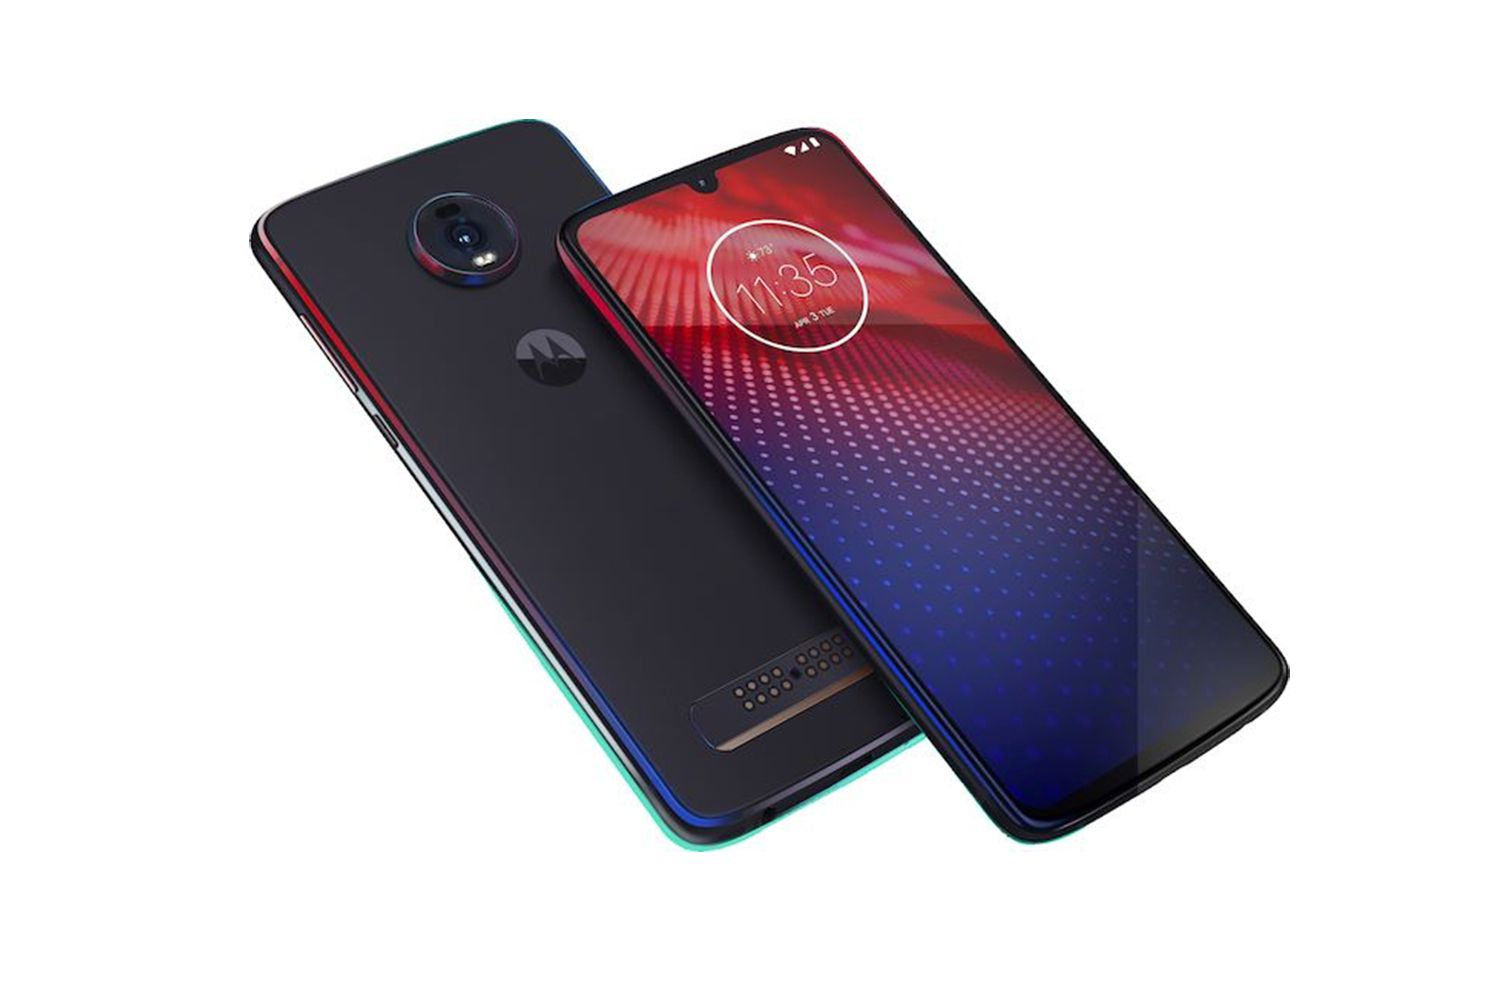 Moto Z4 smartphone front and back